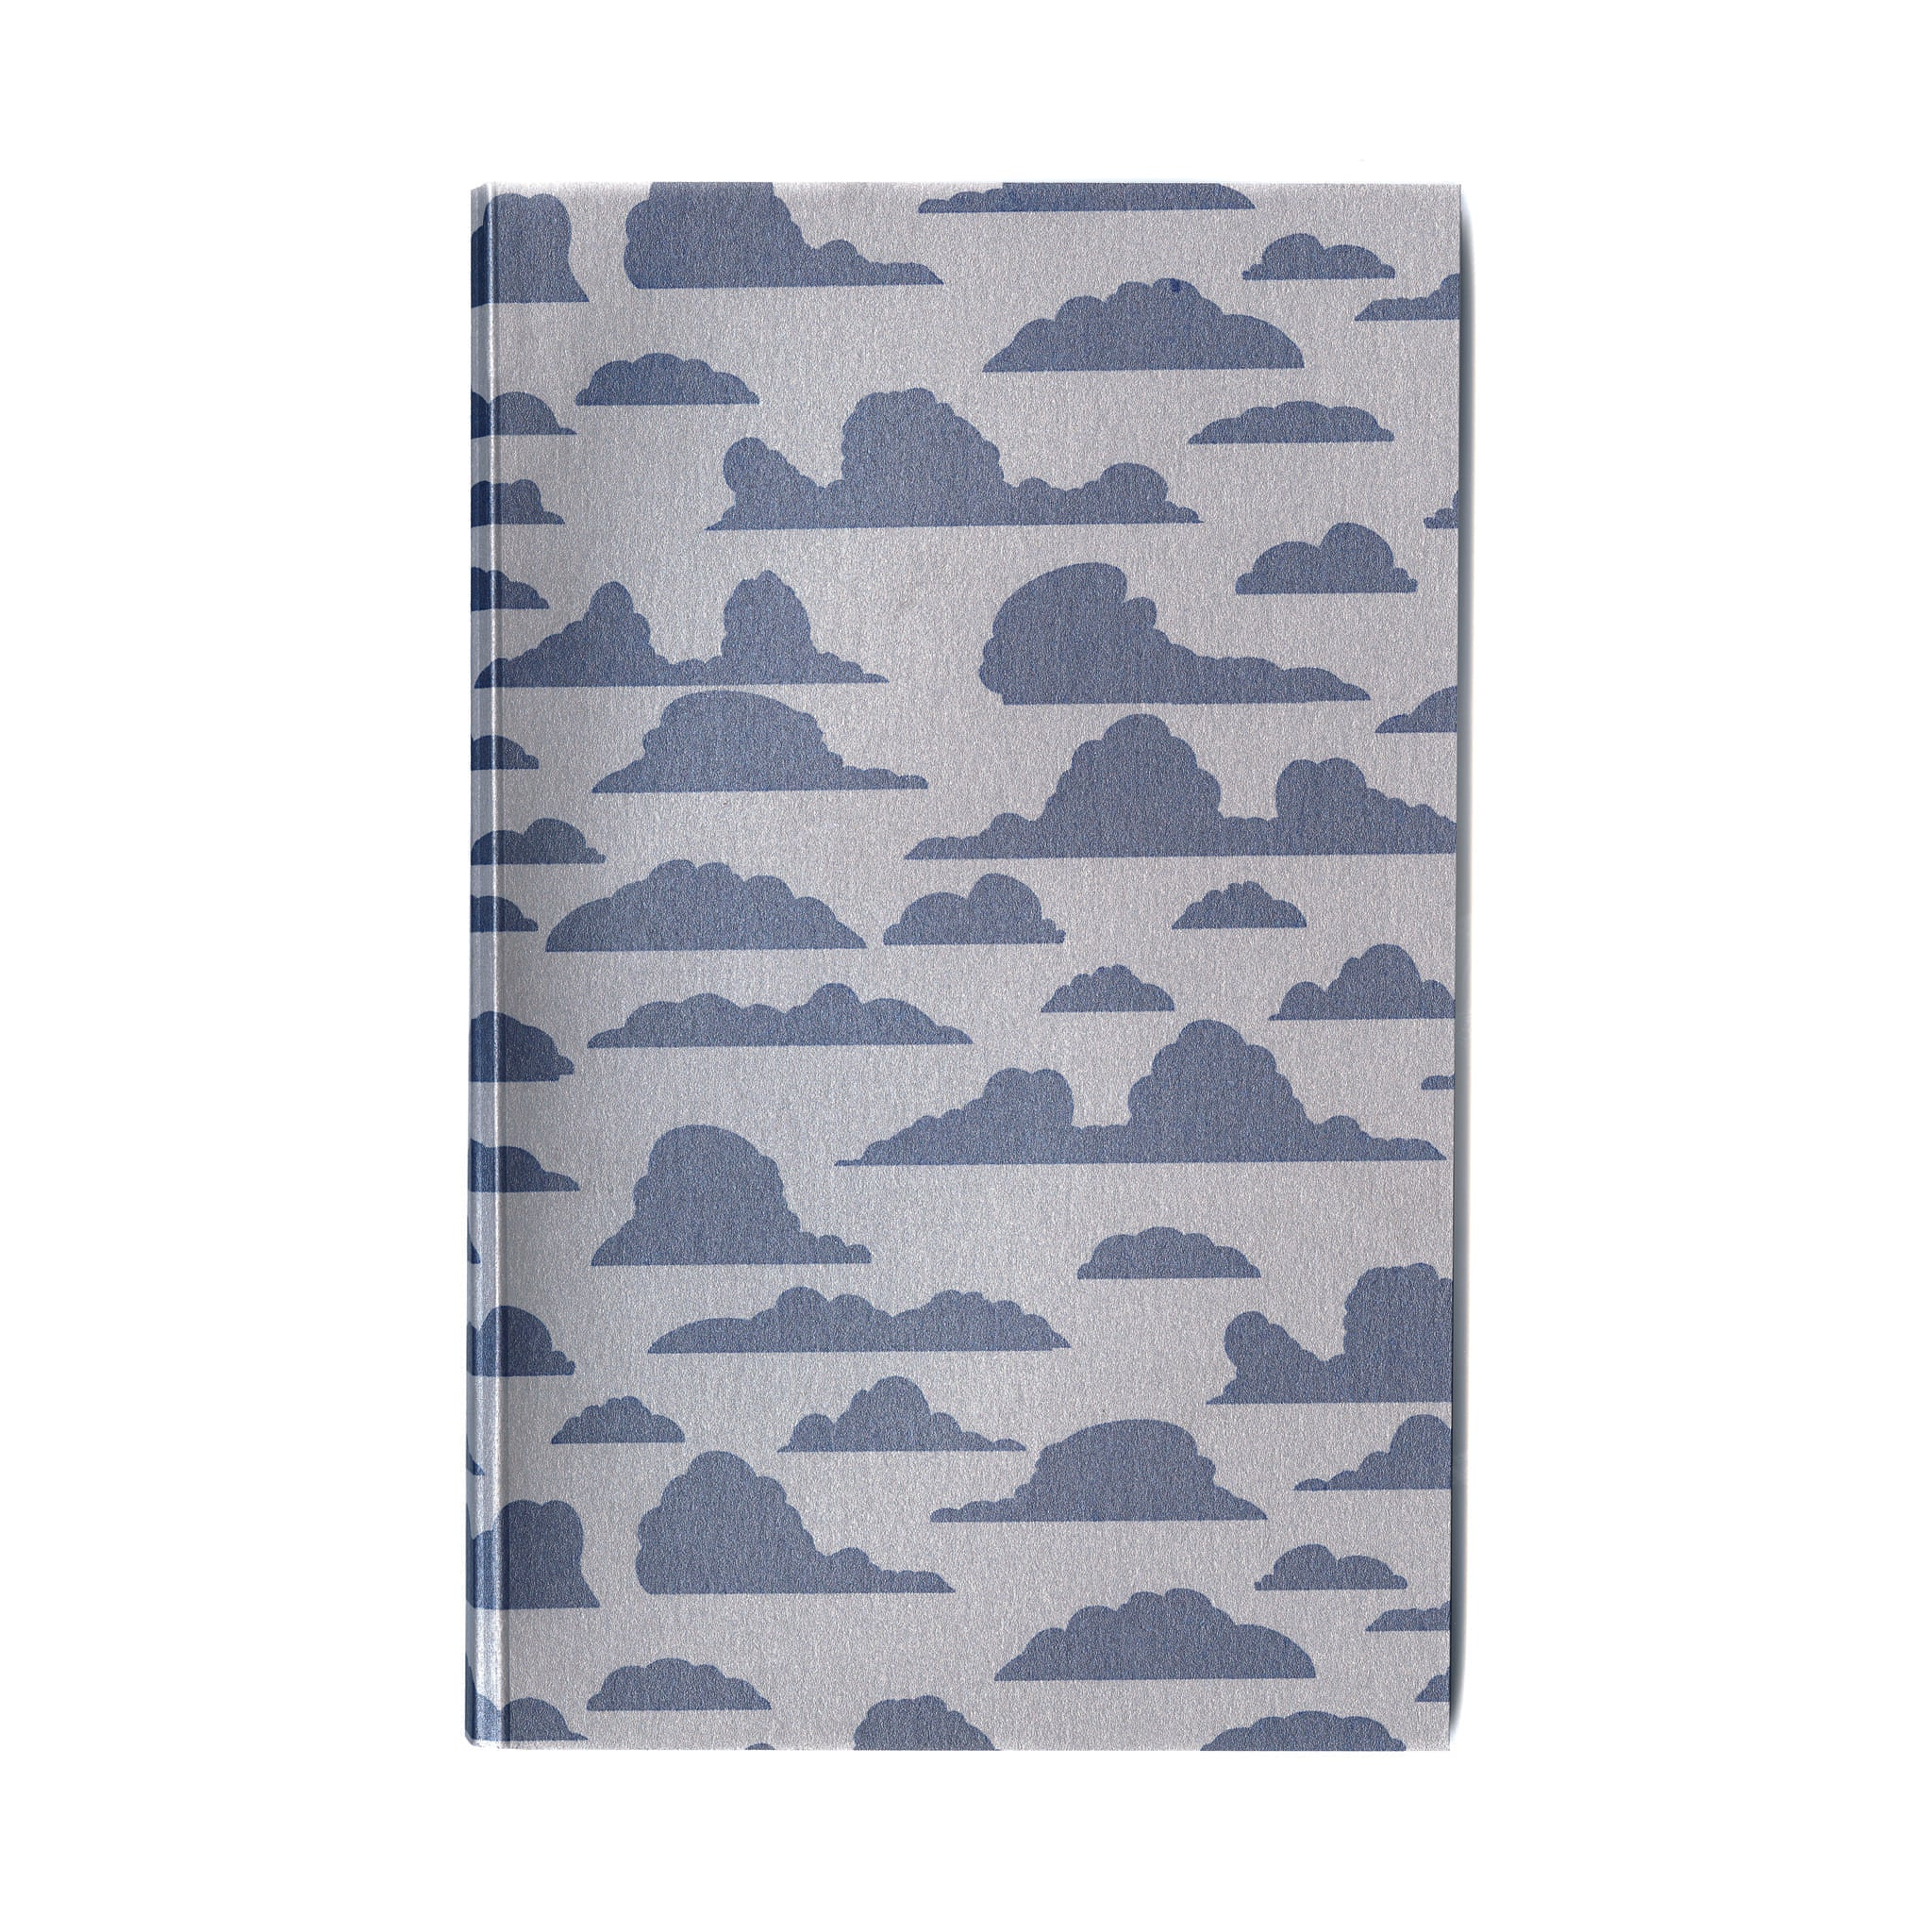 Everyday journal with original blue cloudy print cover and eighty 100% cotton paper pages